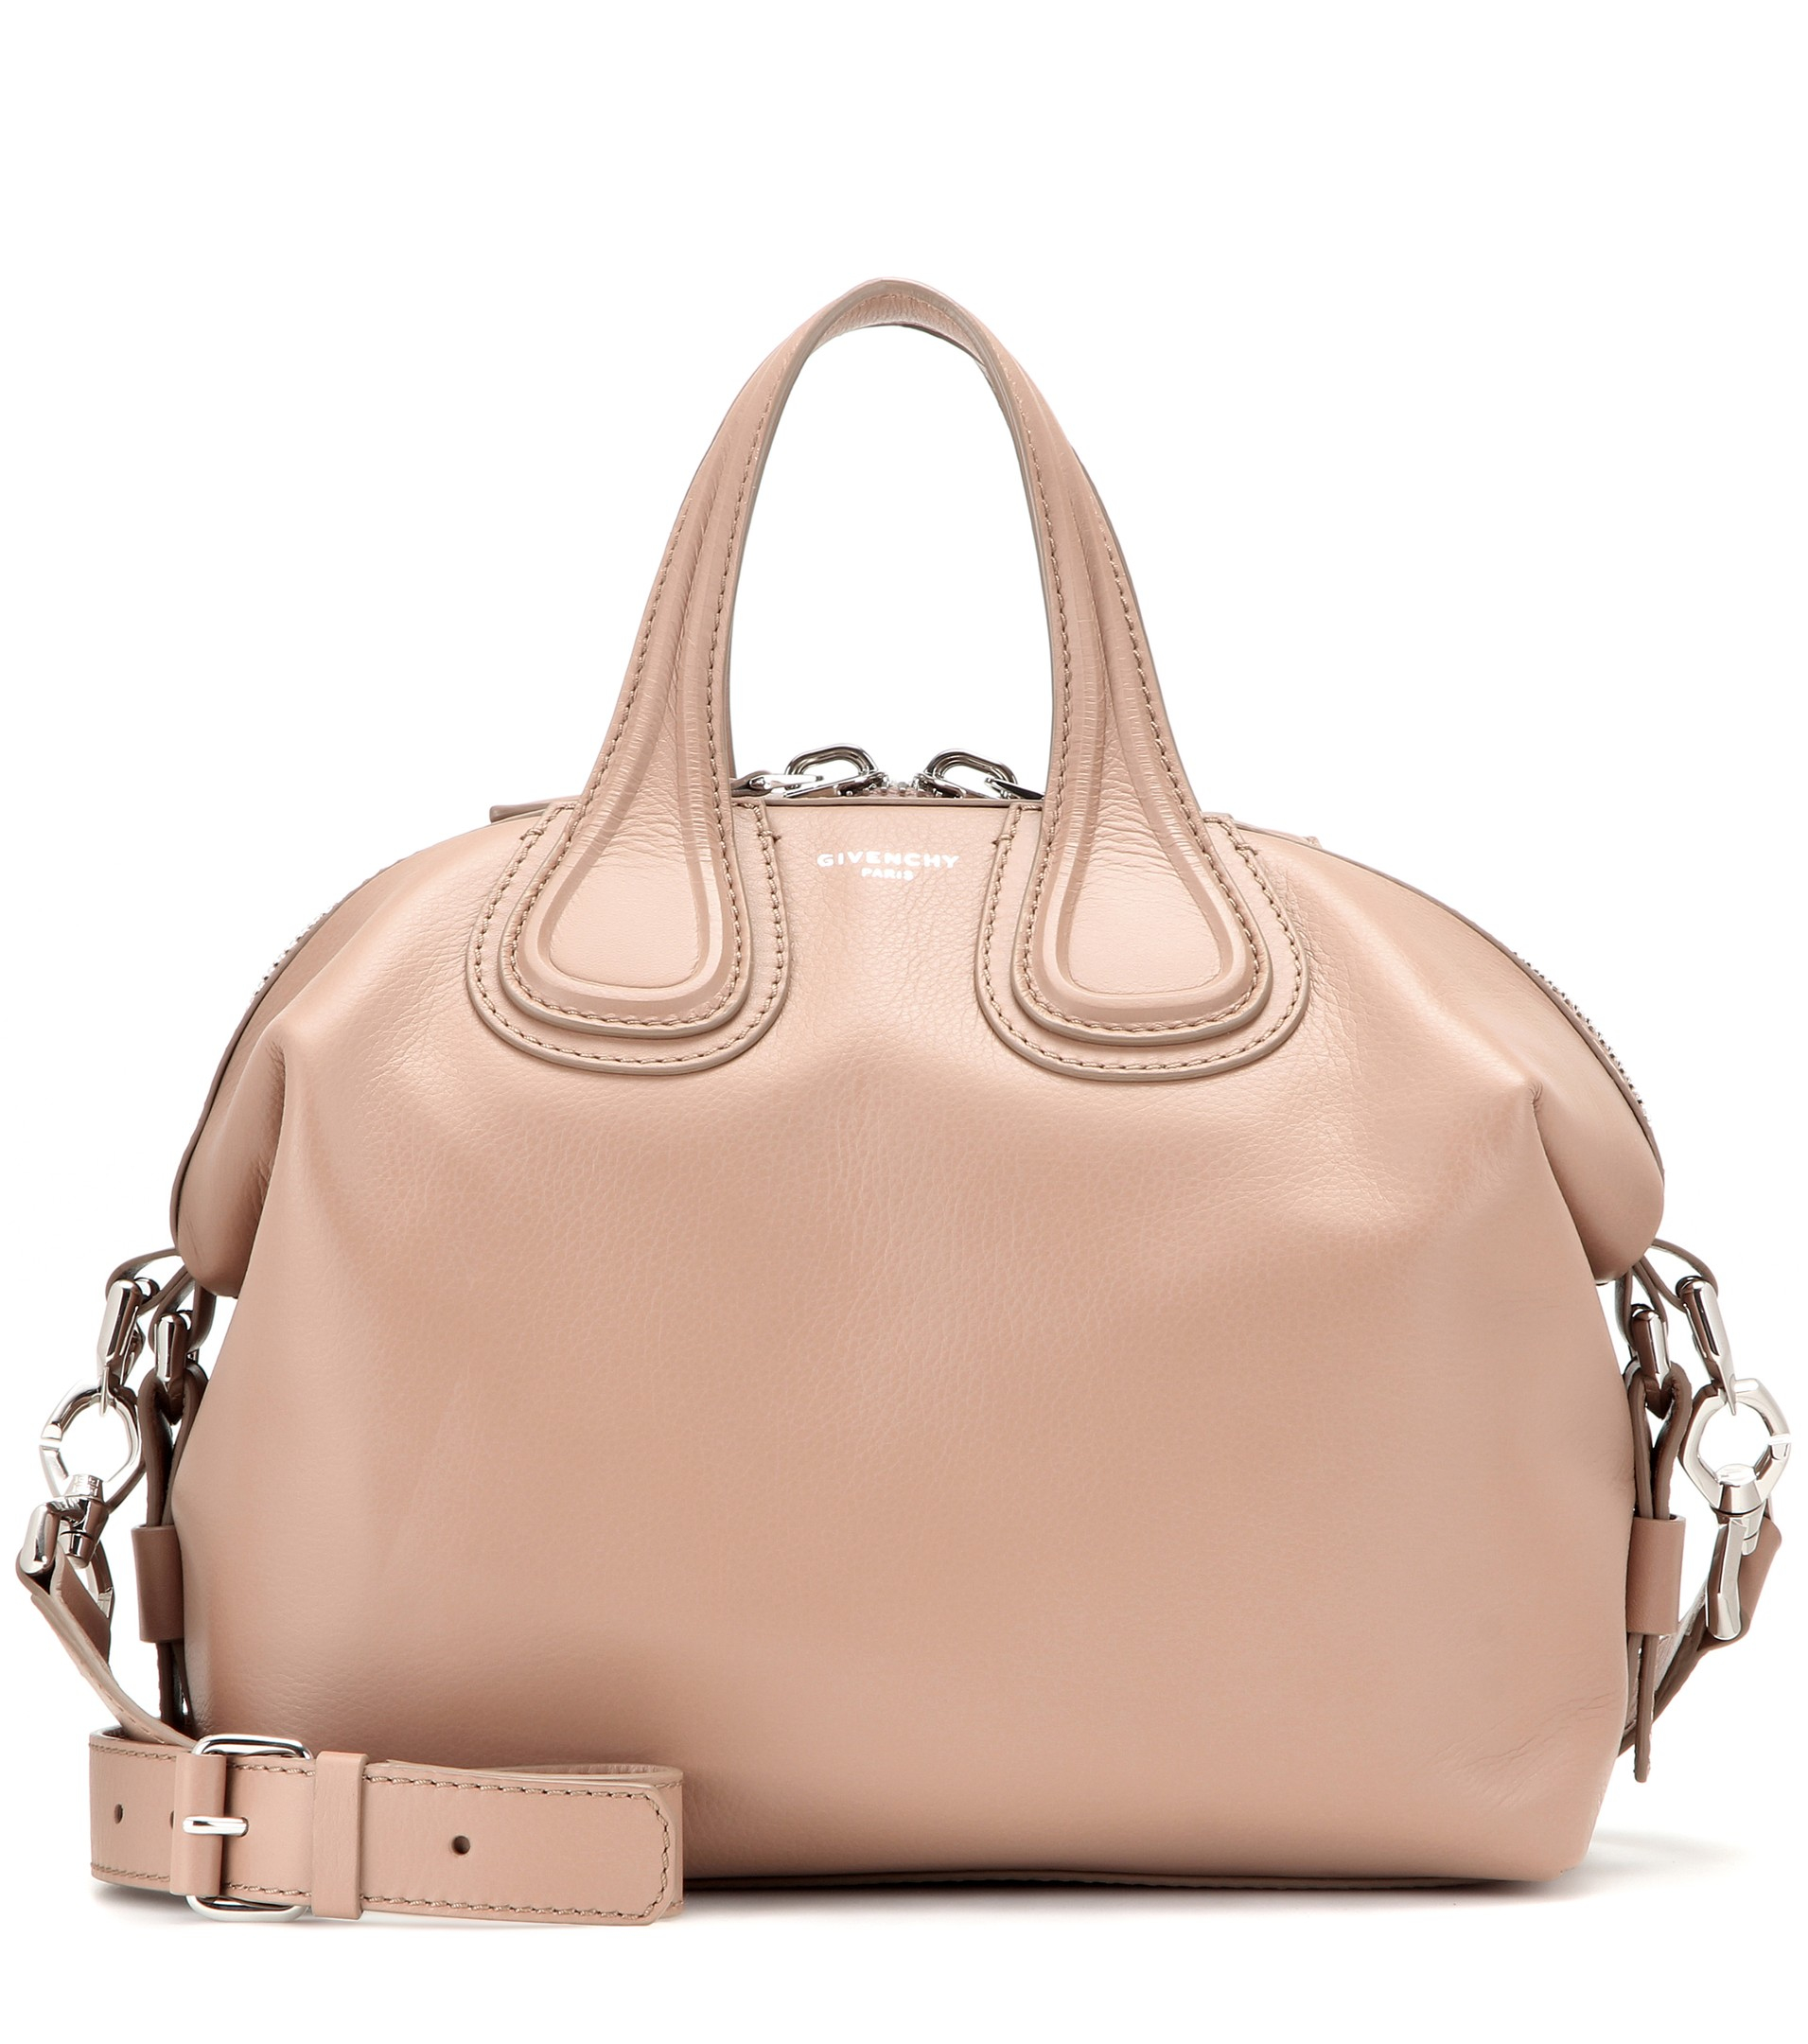 fd15c7df84 Givenchy - Pink Nightingale Small Leather Tote - Lyst